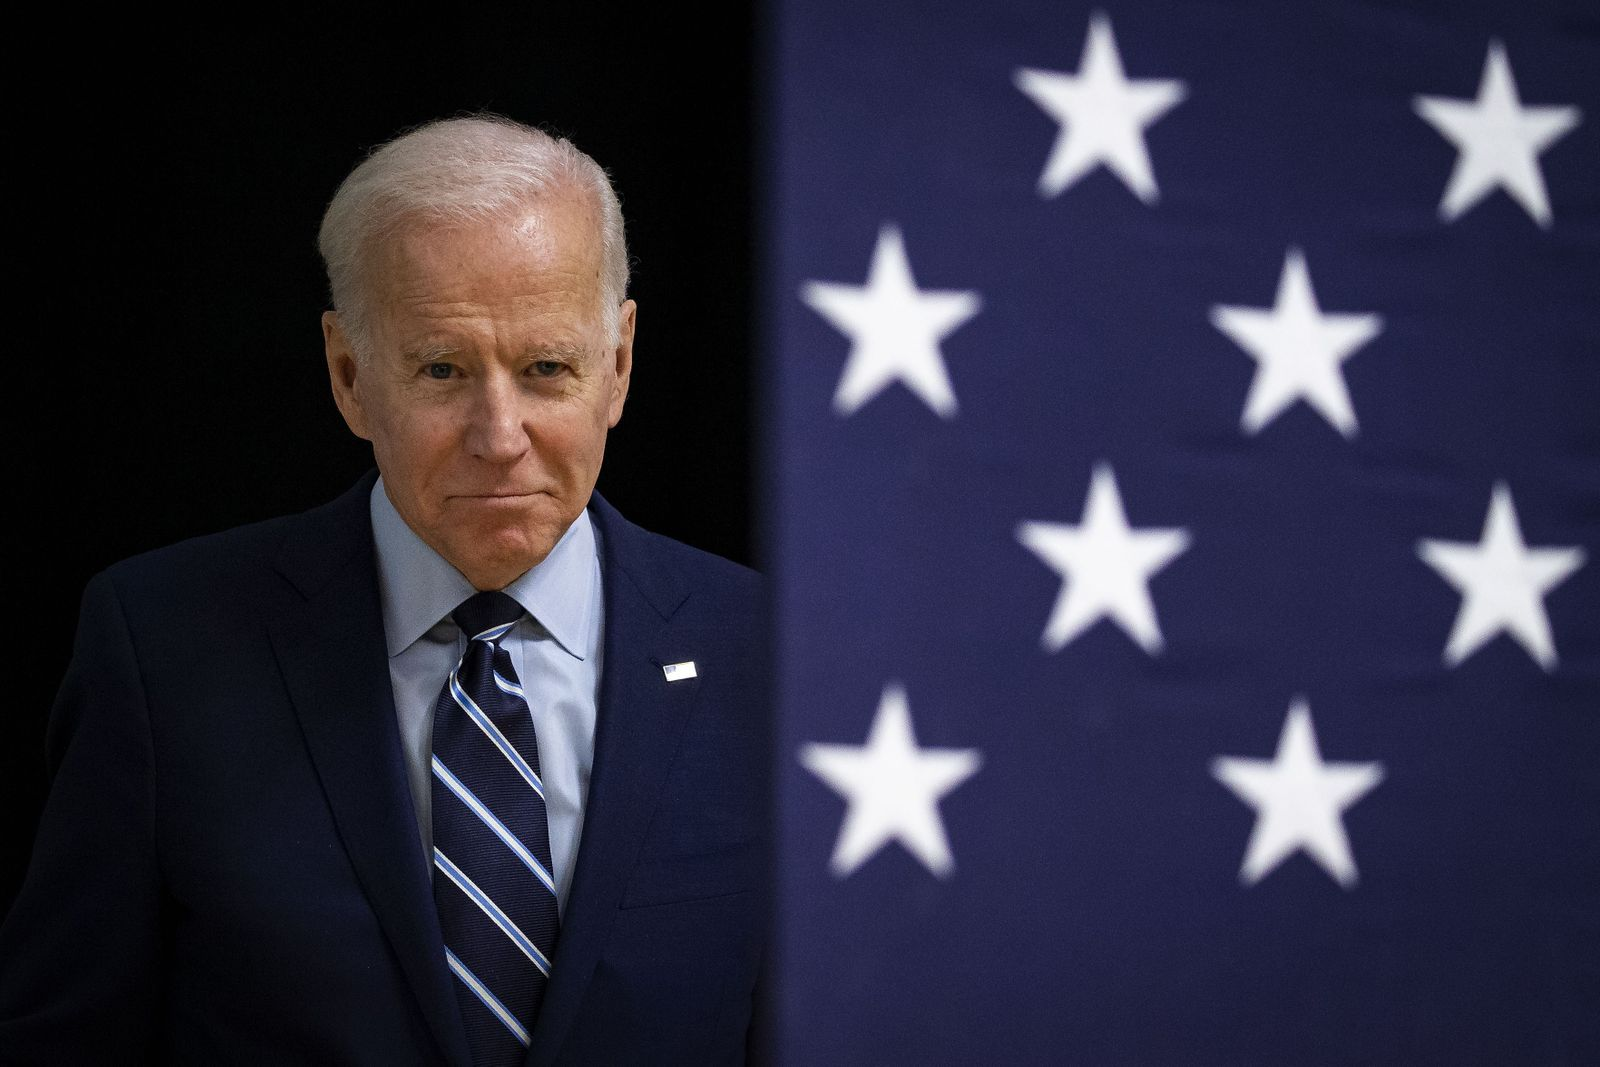 Joe Biden Holds Community Events As He Campaigns In Iowa